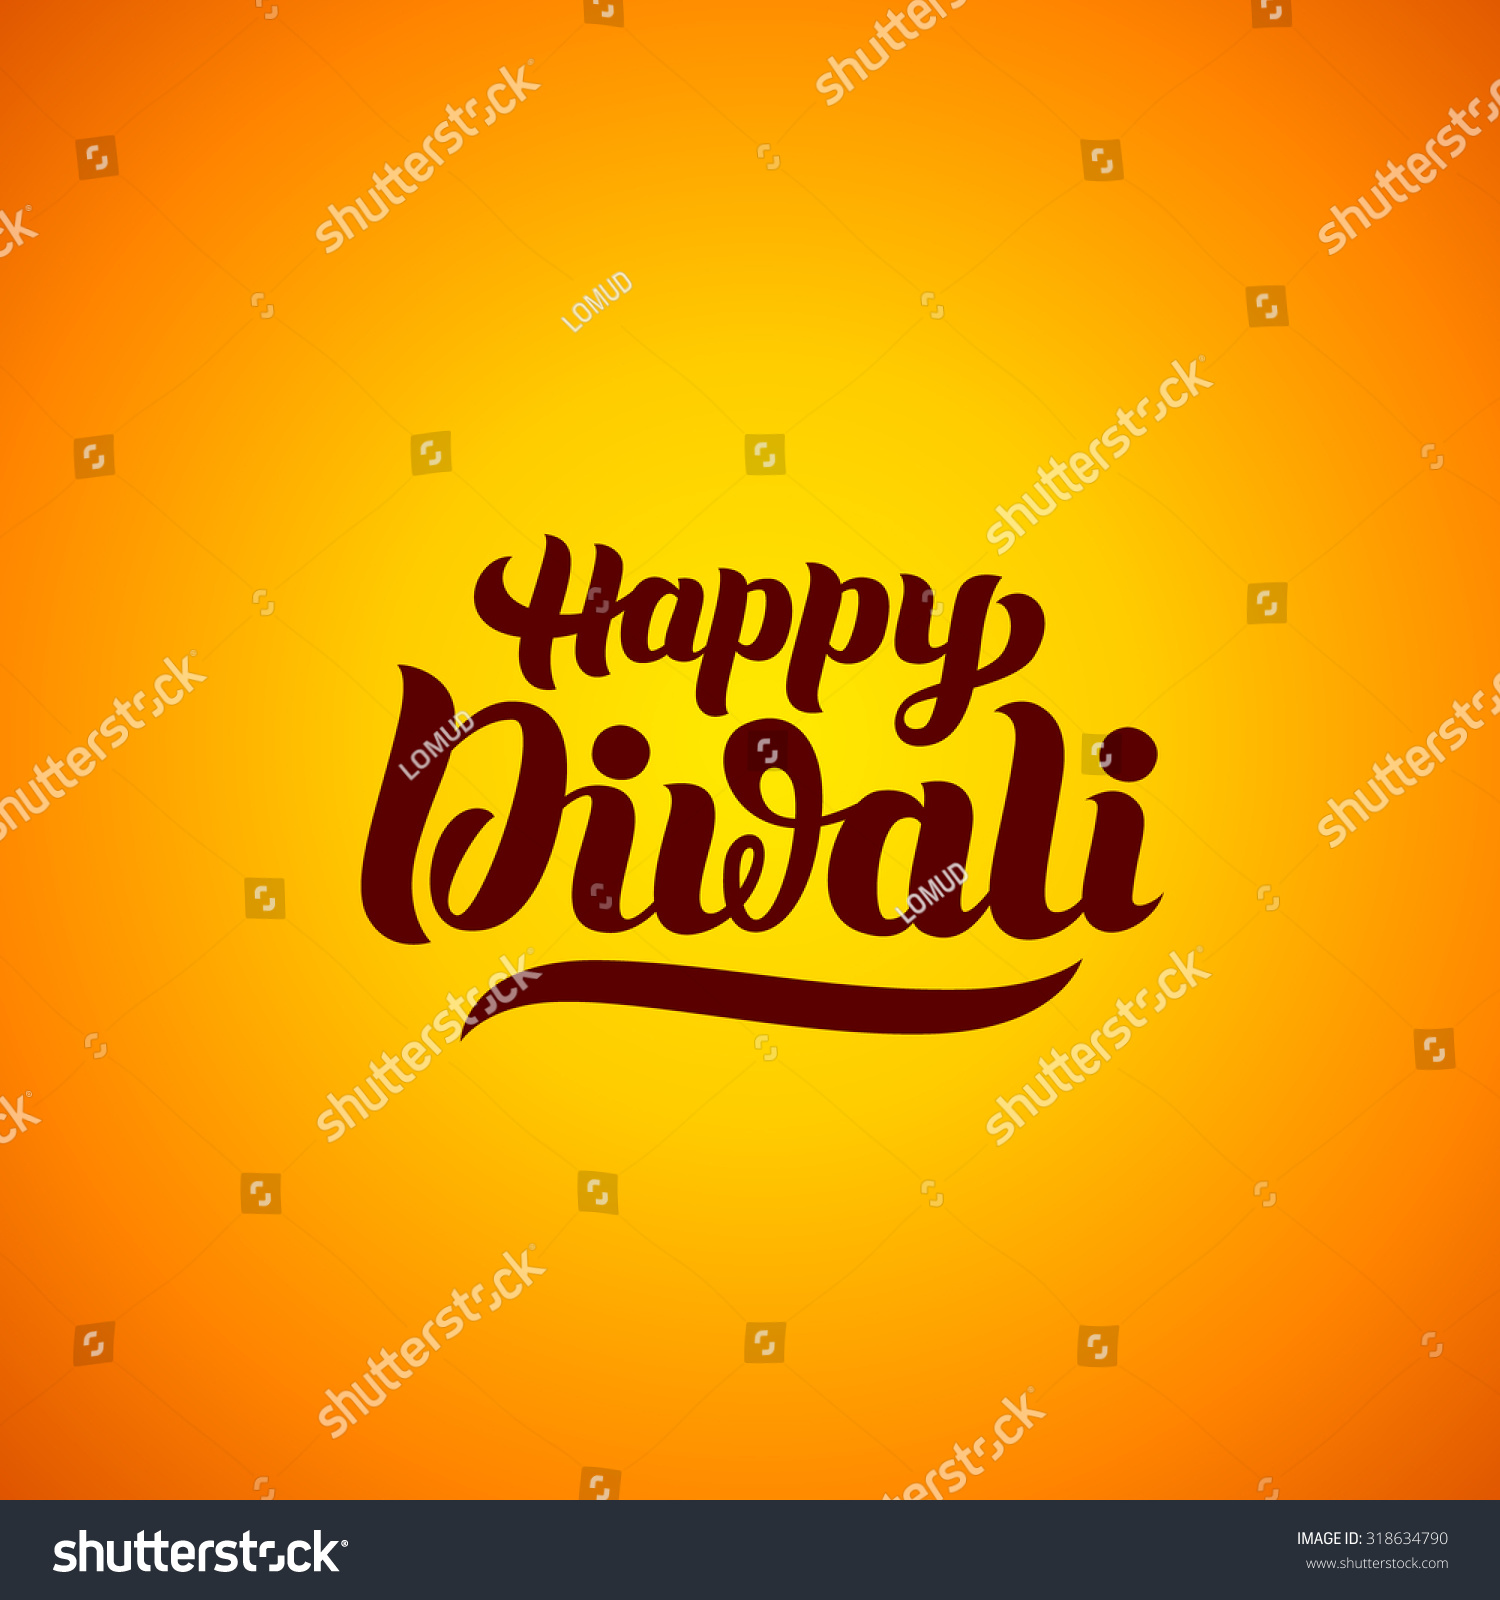 Happy Diwali Handlettering Indian Holiday Festival Stock Vector